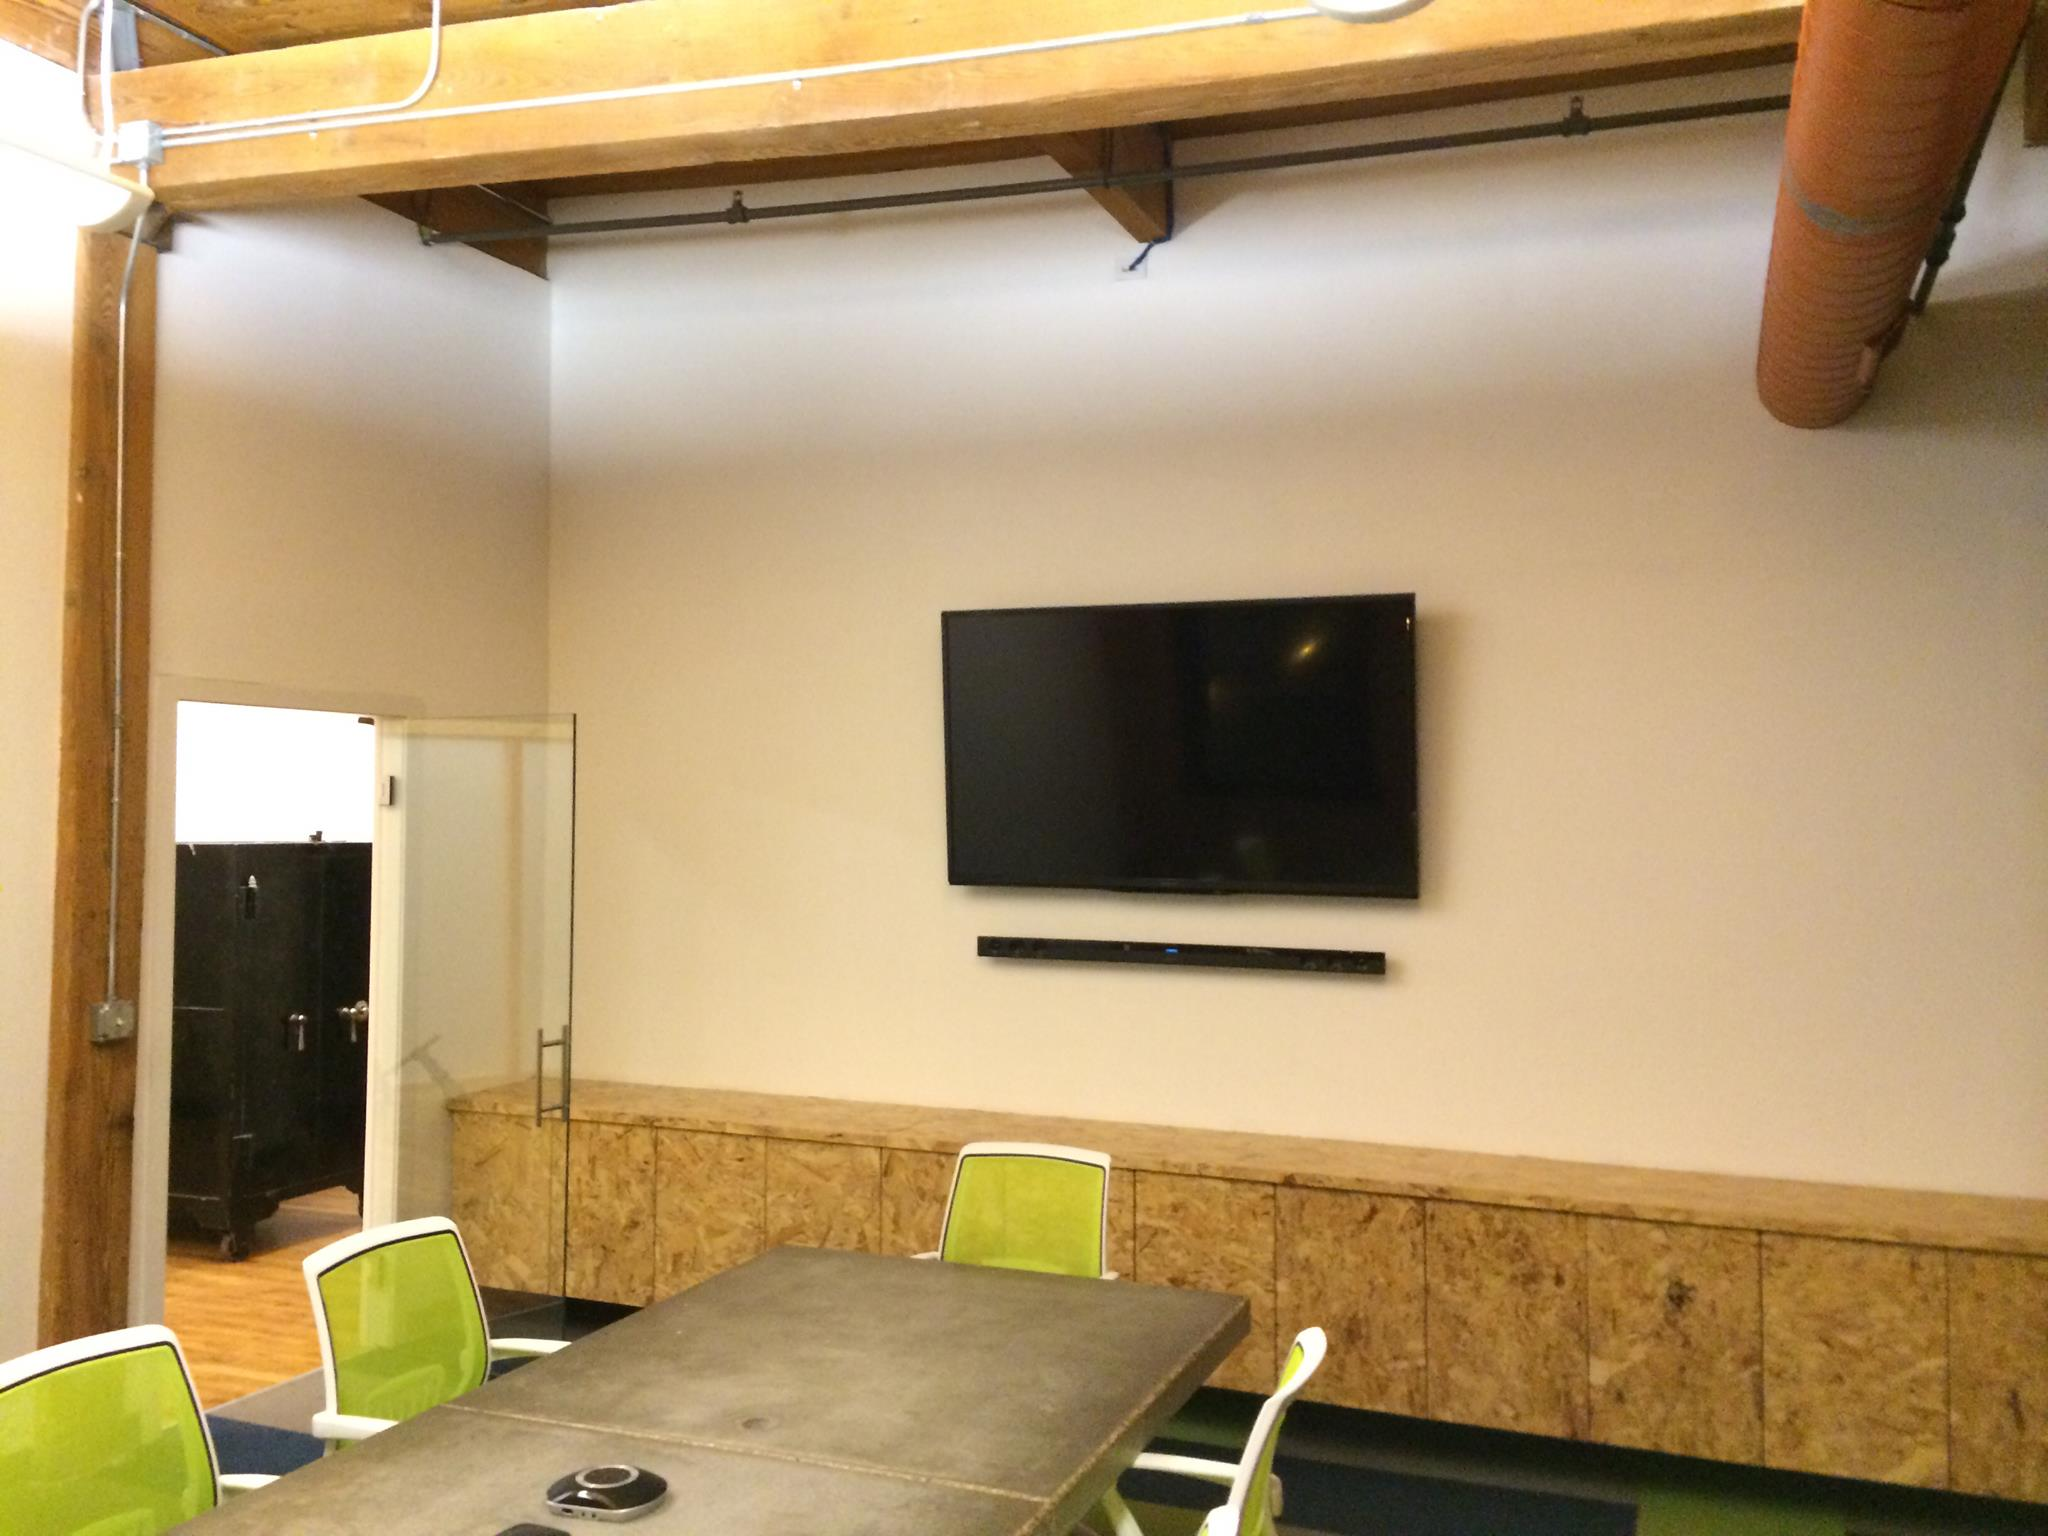 TV+Sound Bar Installation